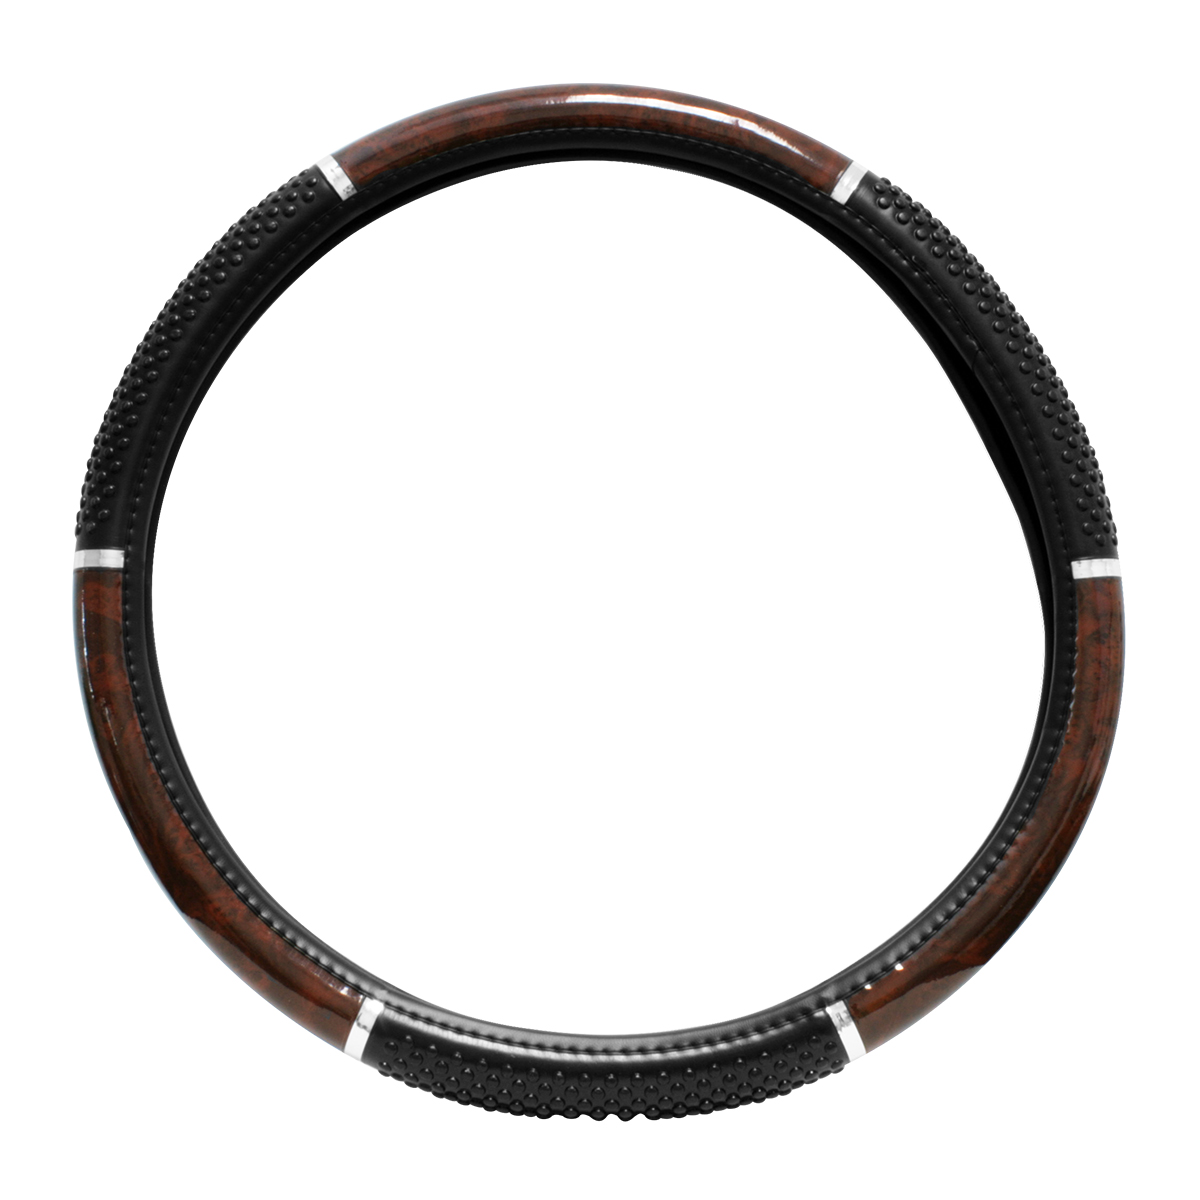 Steering Wheel Cover, Dark Wood with Black soft raised Vinyl Beads for Semi Truck, 18""